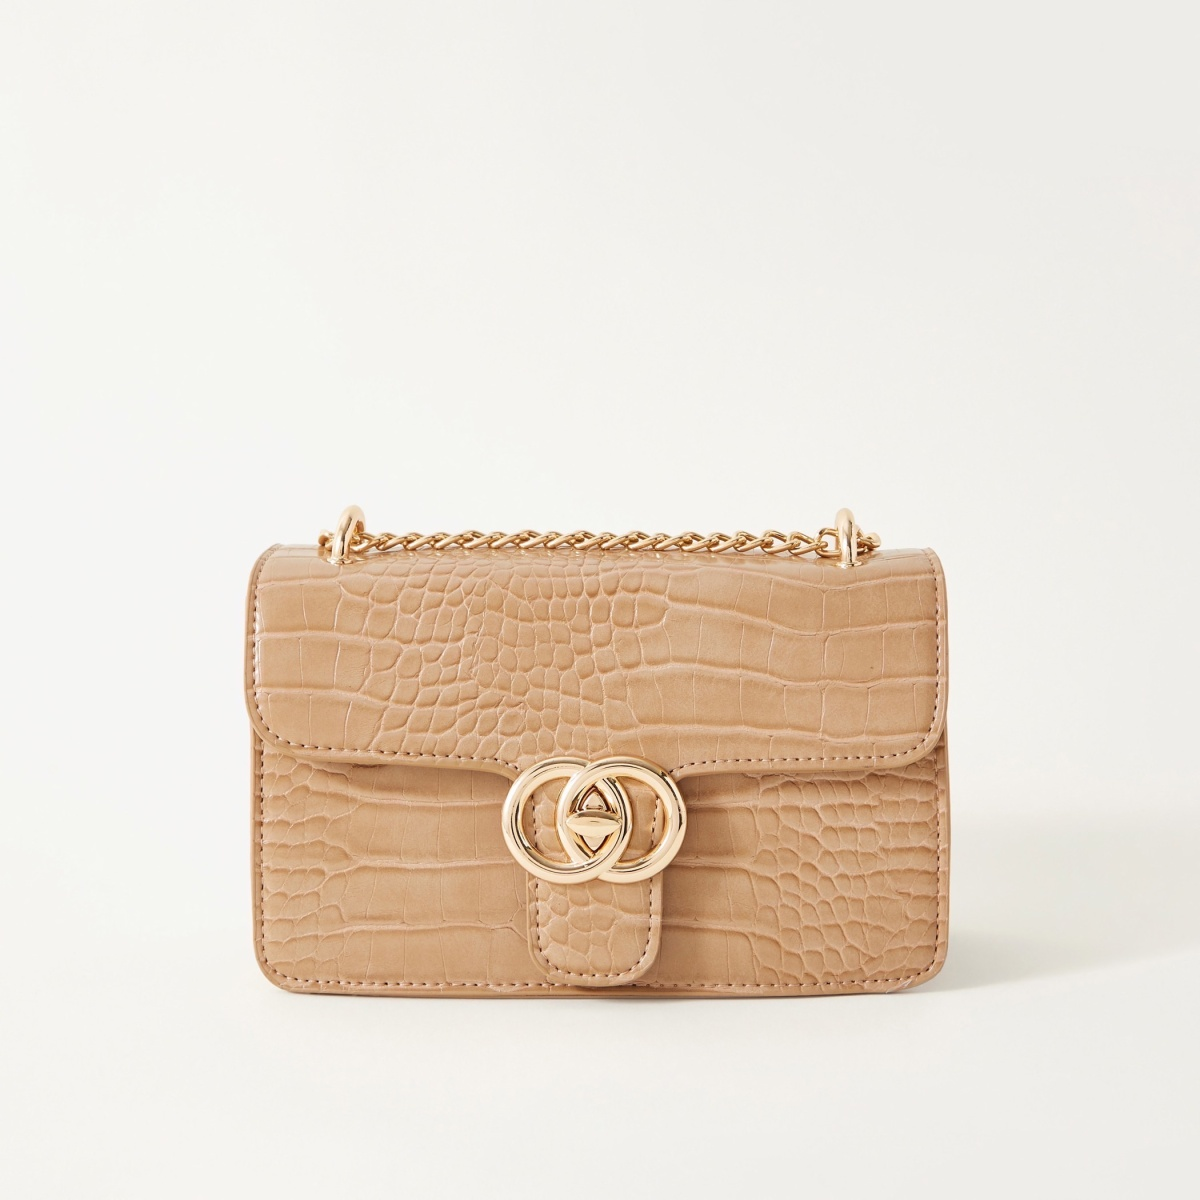 Sasha Bao Croc-Embossed Crossbody Bag with Chain Strap